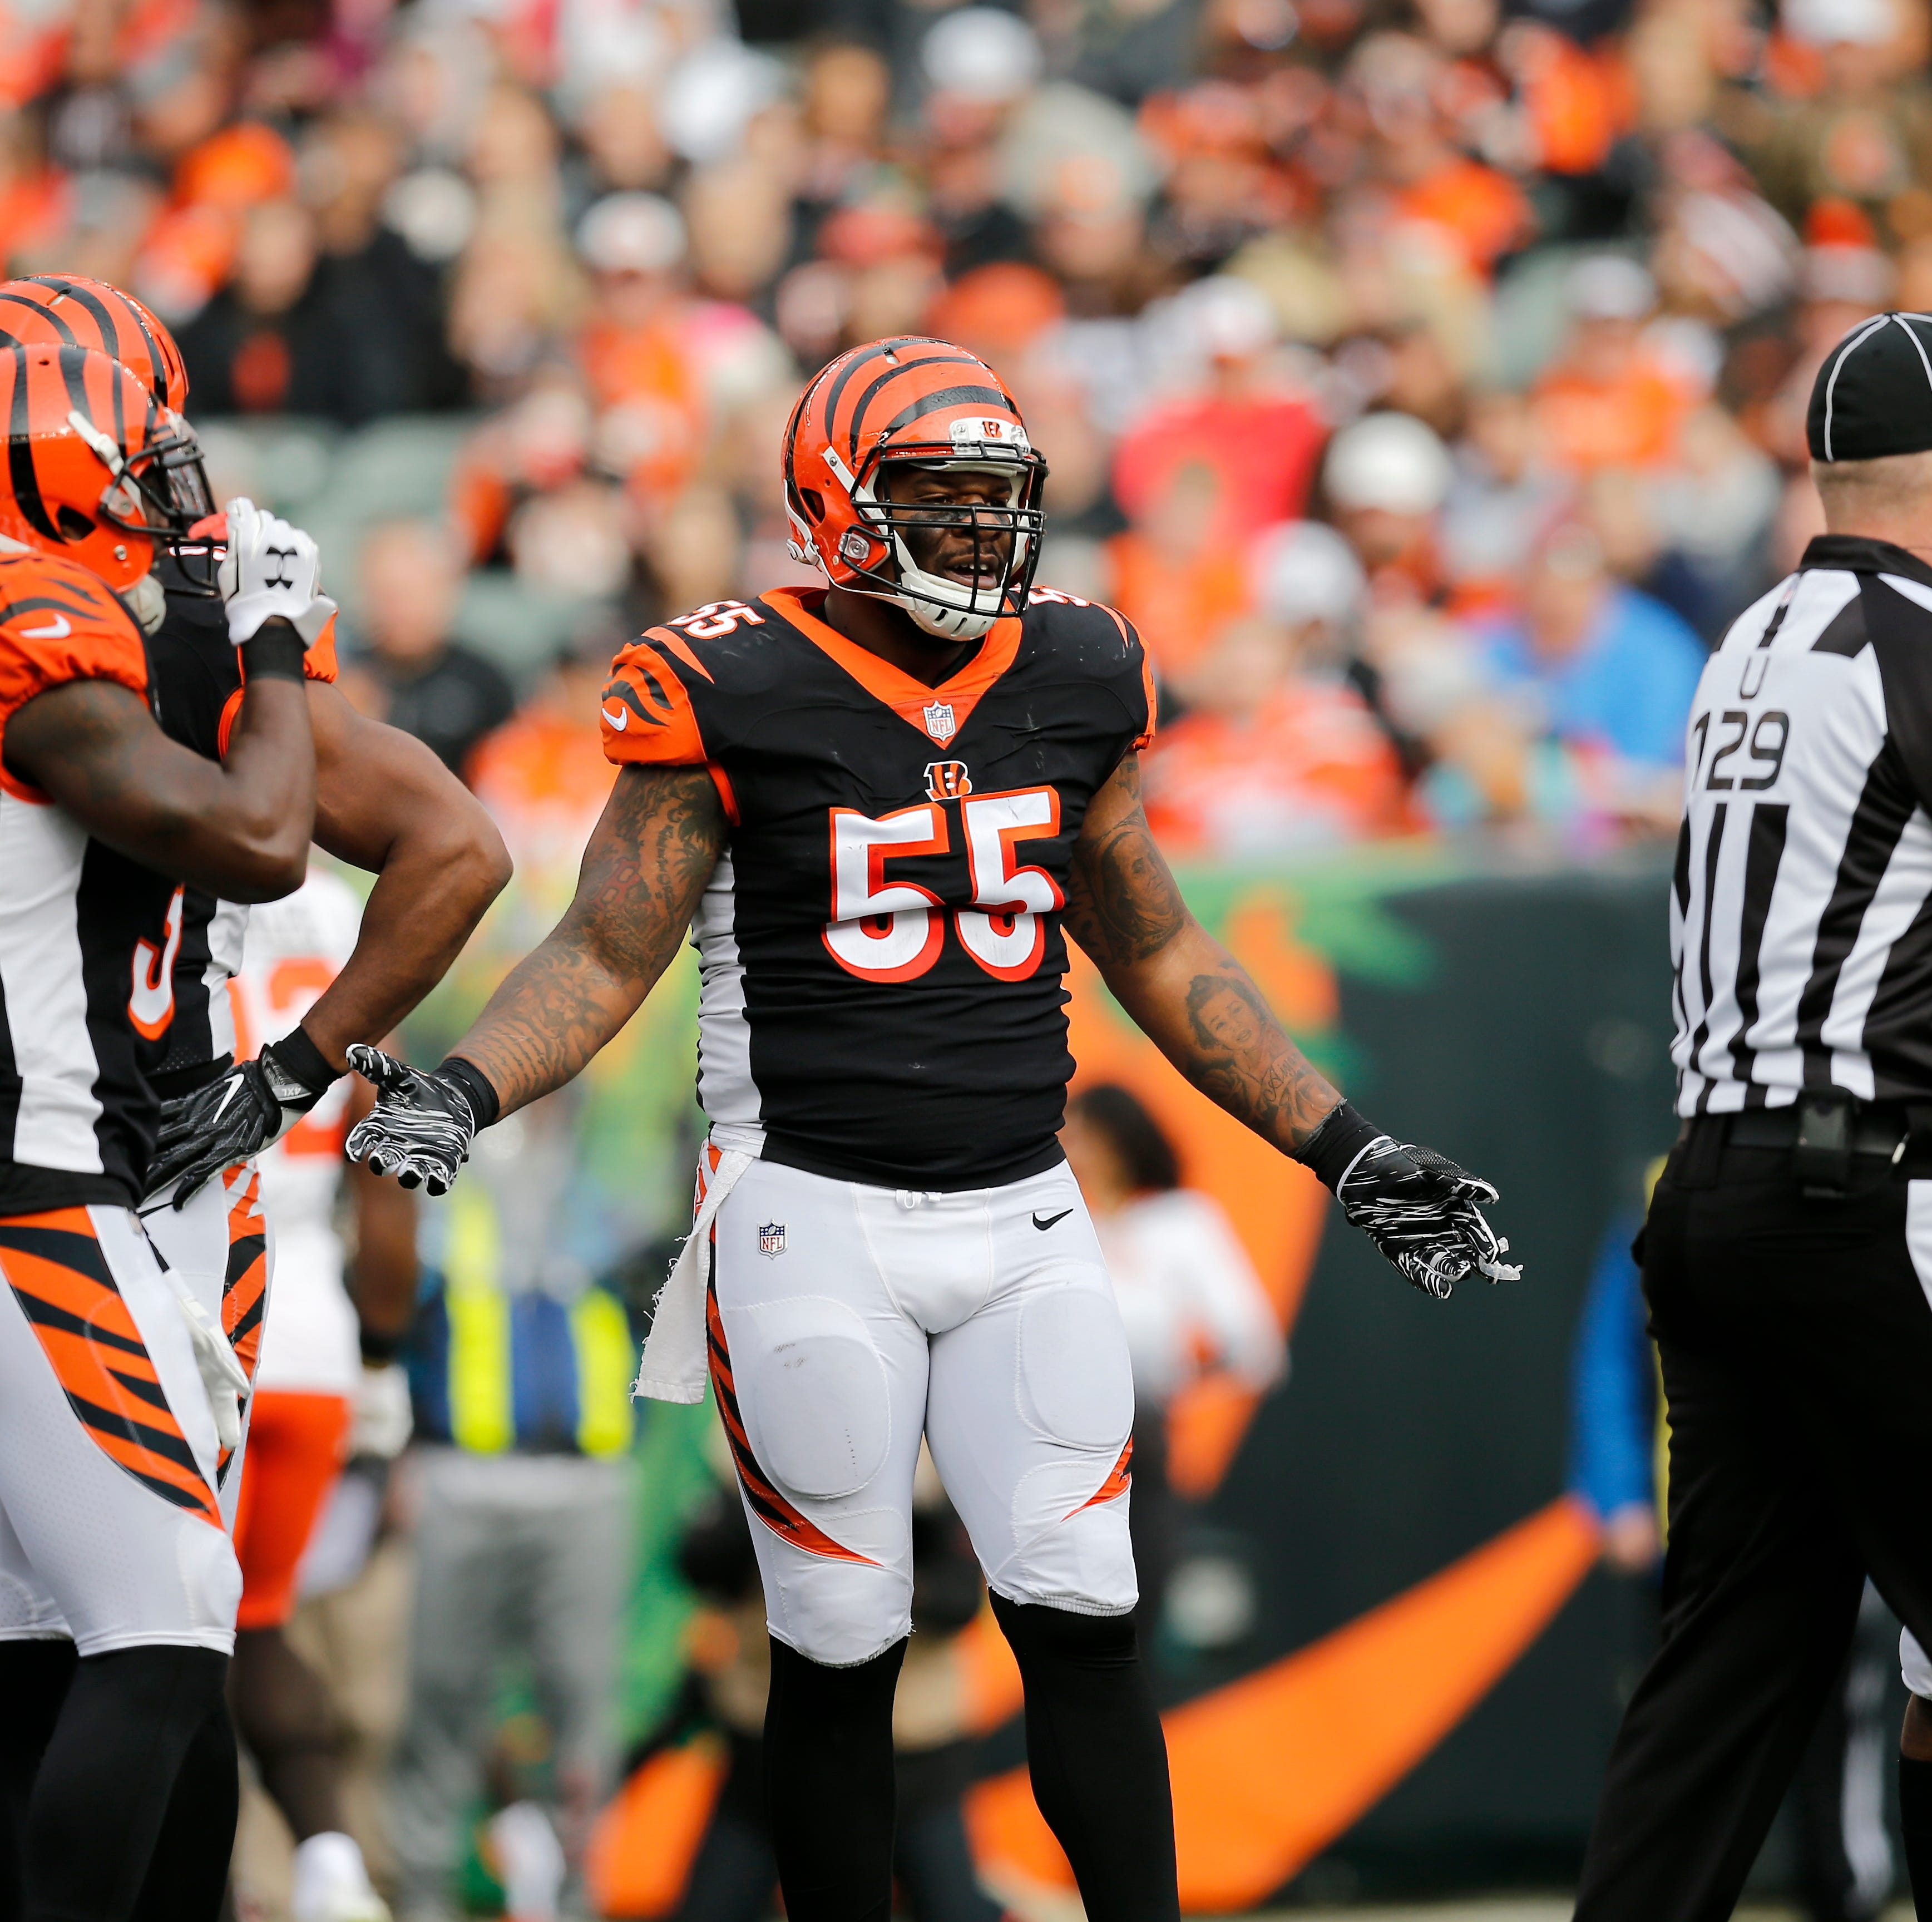 Offseason moves Bengals should make: Vontaze Burfict and defense